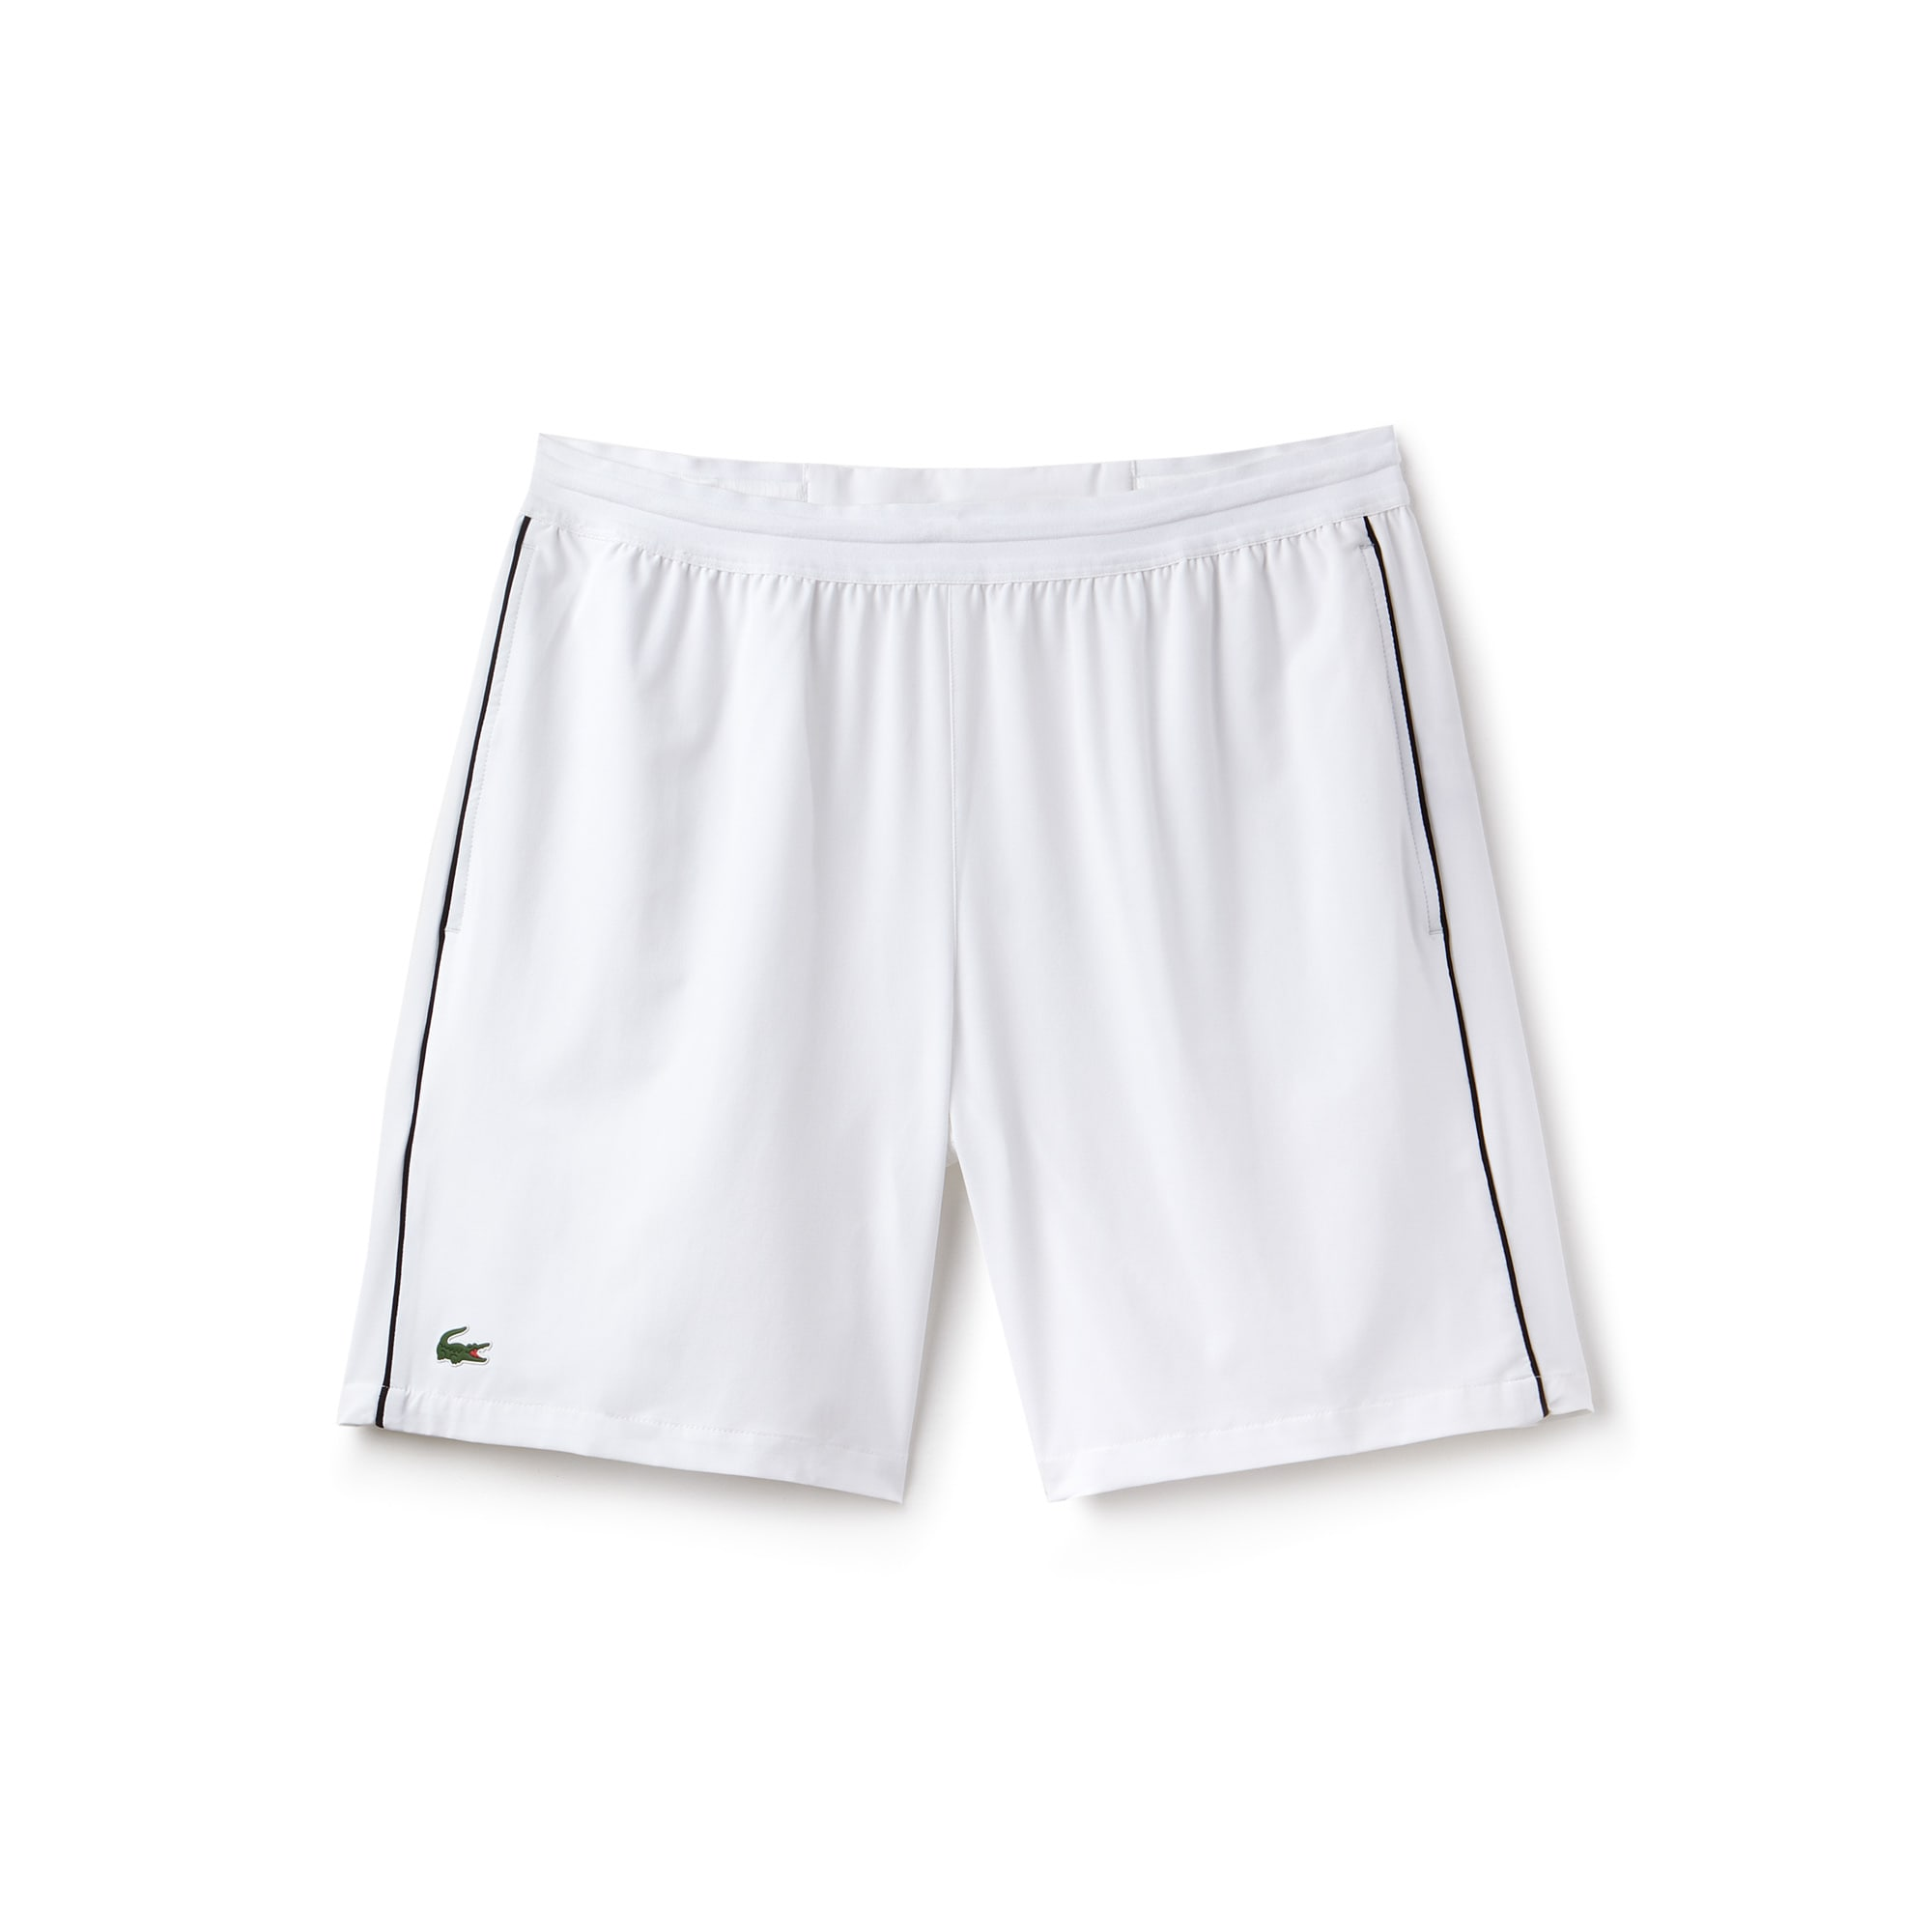 Men's SPORT Piped Stretch Technical Shorts - Novak Djokovic Collection